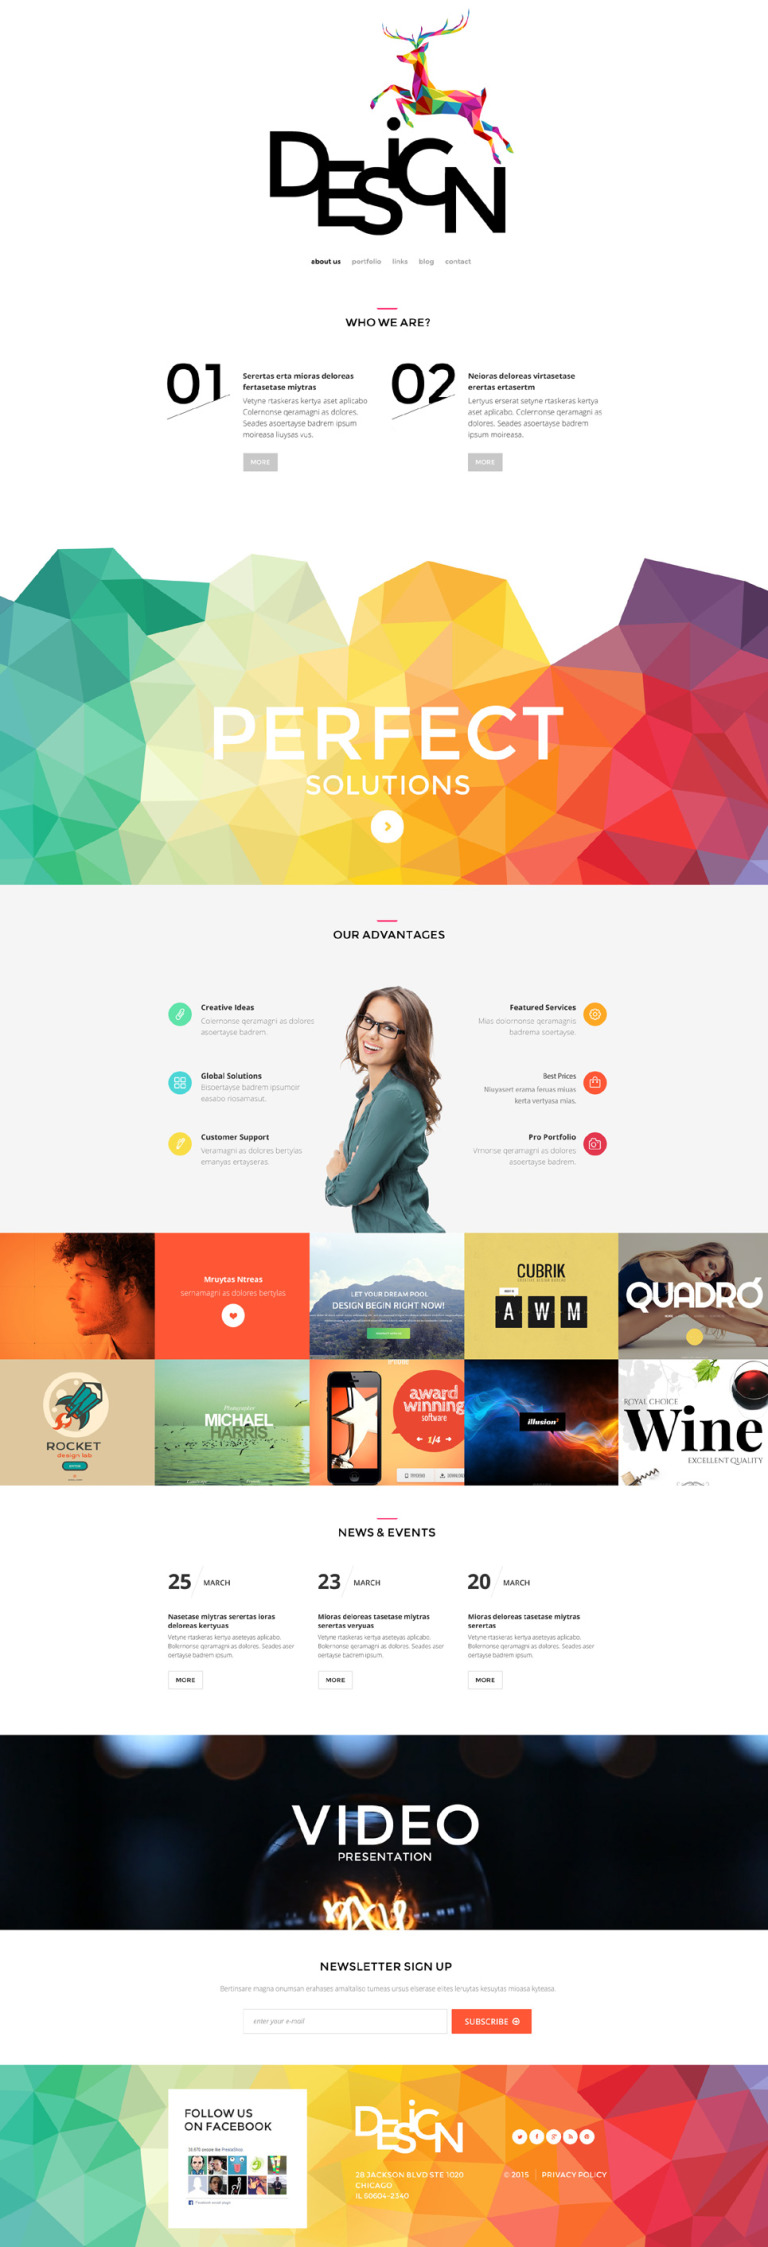 Design Joomla Template New Screenshots BIG